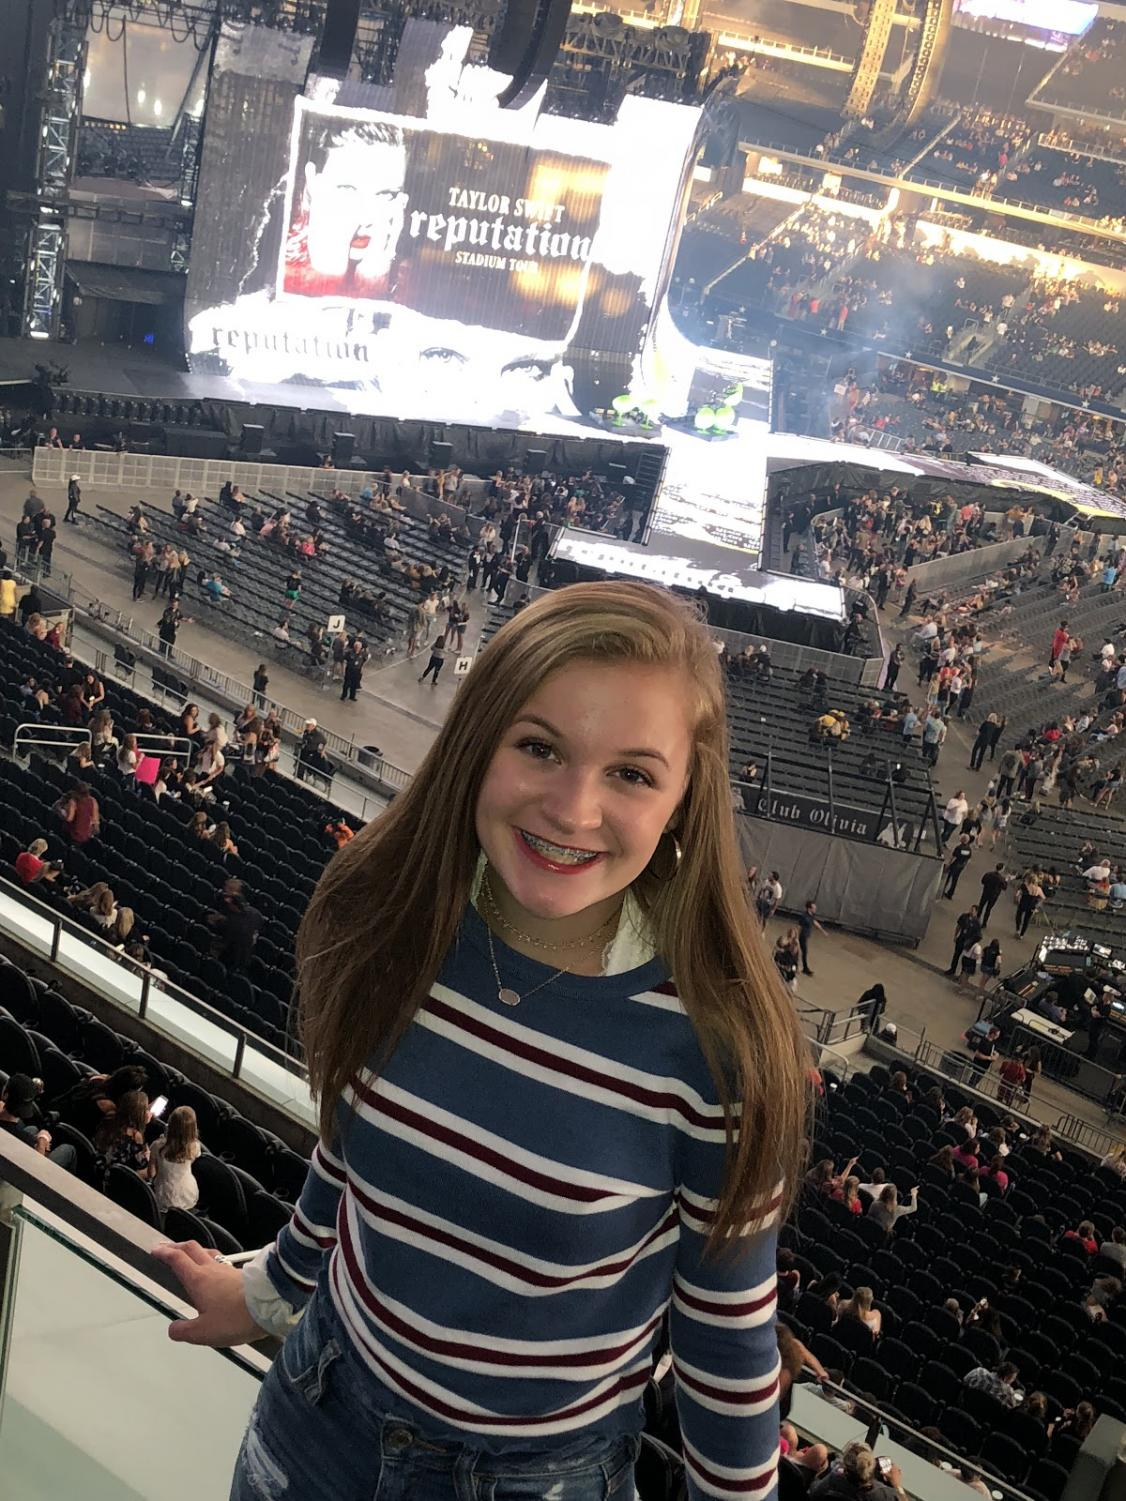 TSwiftness \\ The mega-superstar didn't let me down. Attending the Reputation Stadium tour was one of the greatest nights of my life.